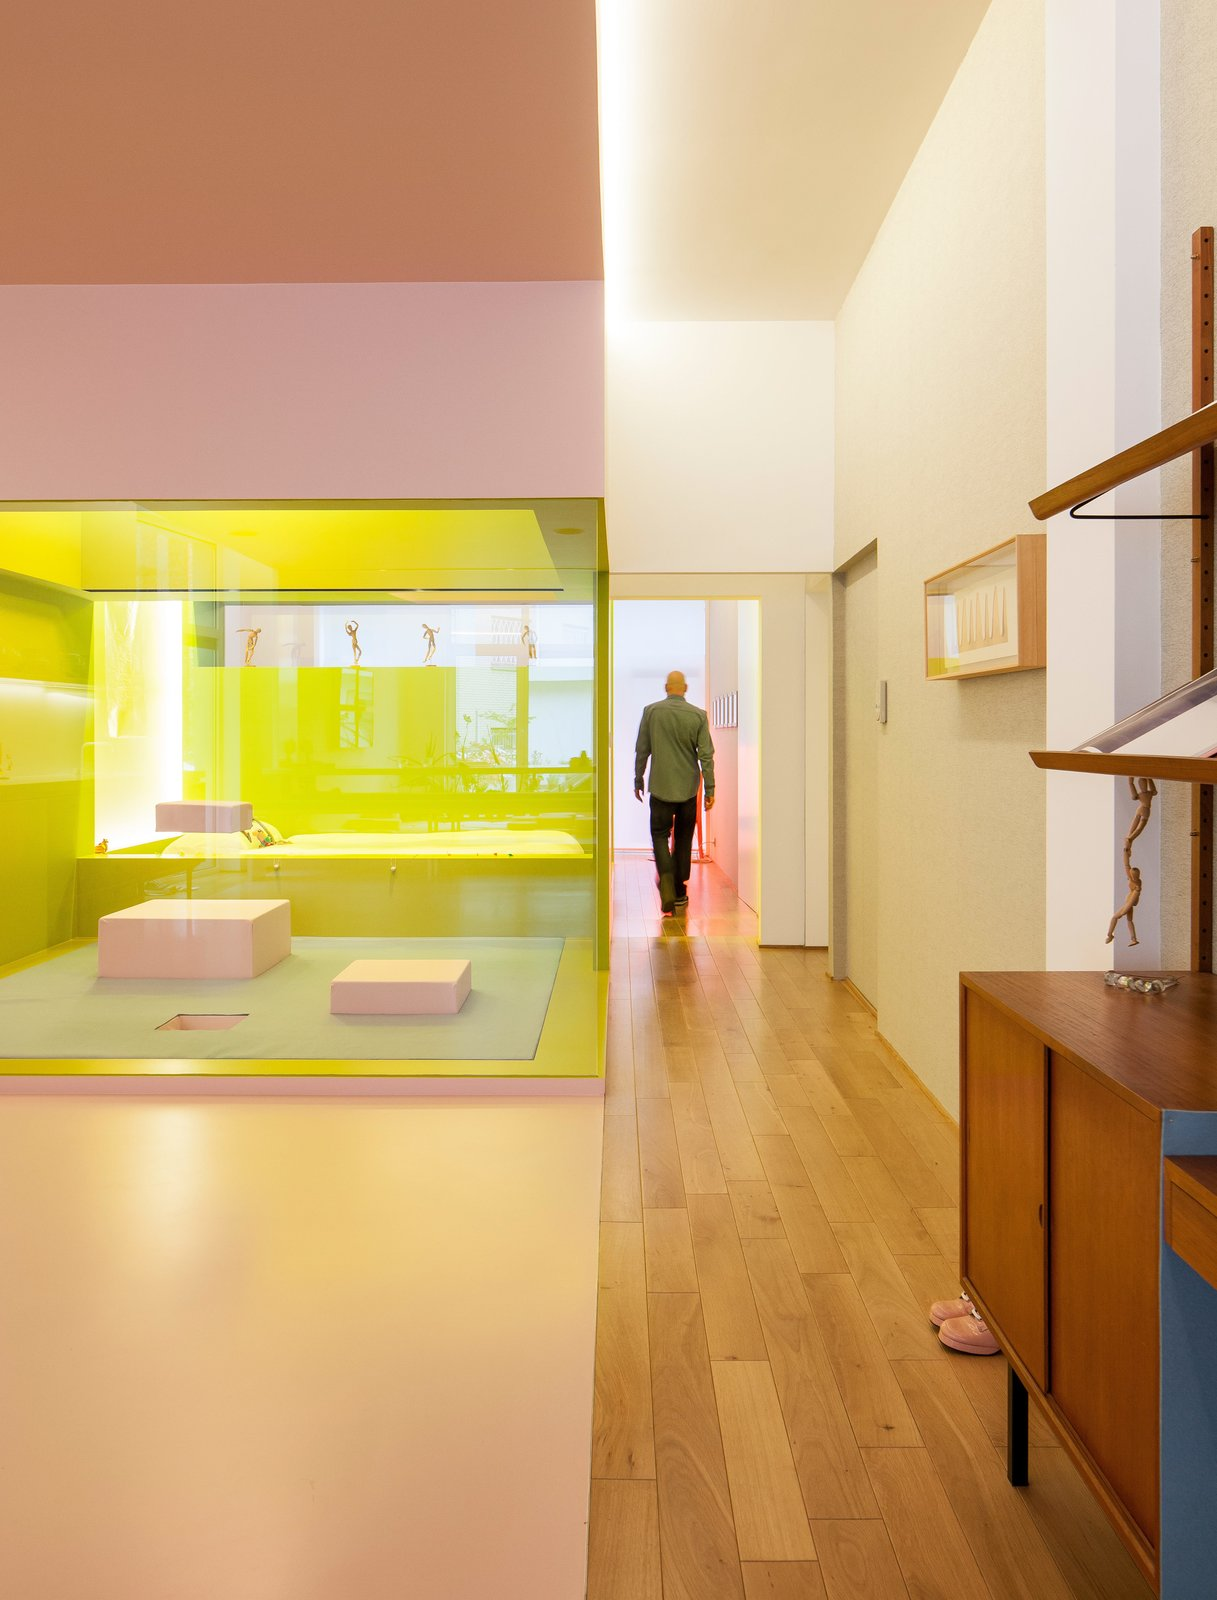 #interior #design #interiordesign #yellow #pink #neon #neonyellow #pastel #glass #glasspartition #atmospheric #glow #renovation #warehouse #apartment #loft #spacious #lighting #bright #brightcolors #design #modern #inside #woodfloor #woodfurniture #whitewall   36+ Interior Color Pop Ideas For Modern Homes